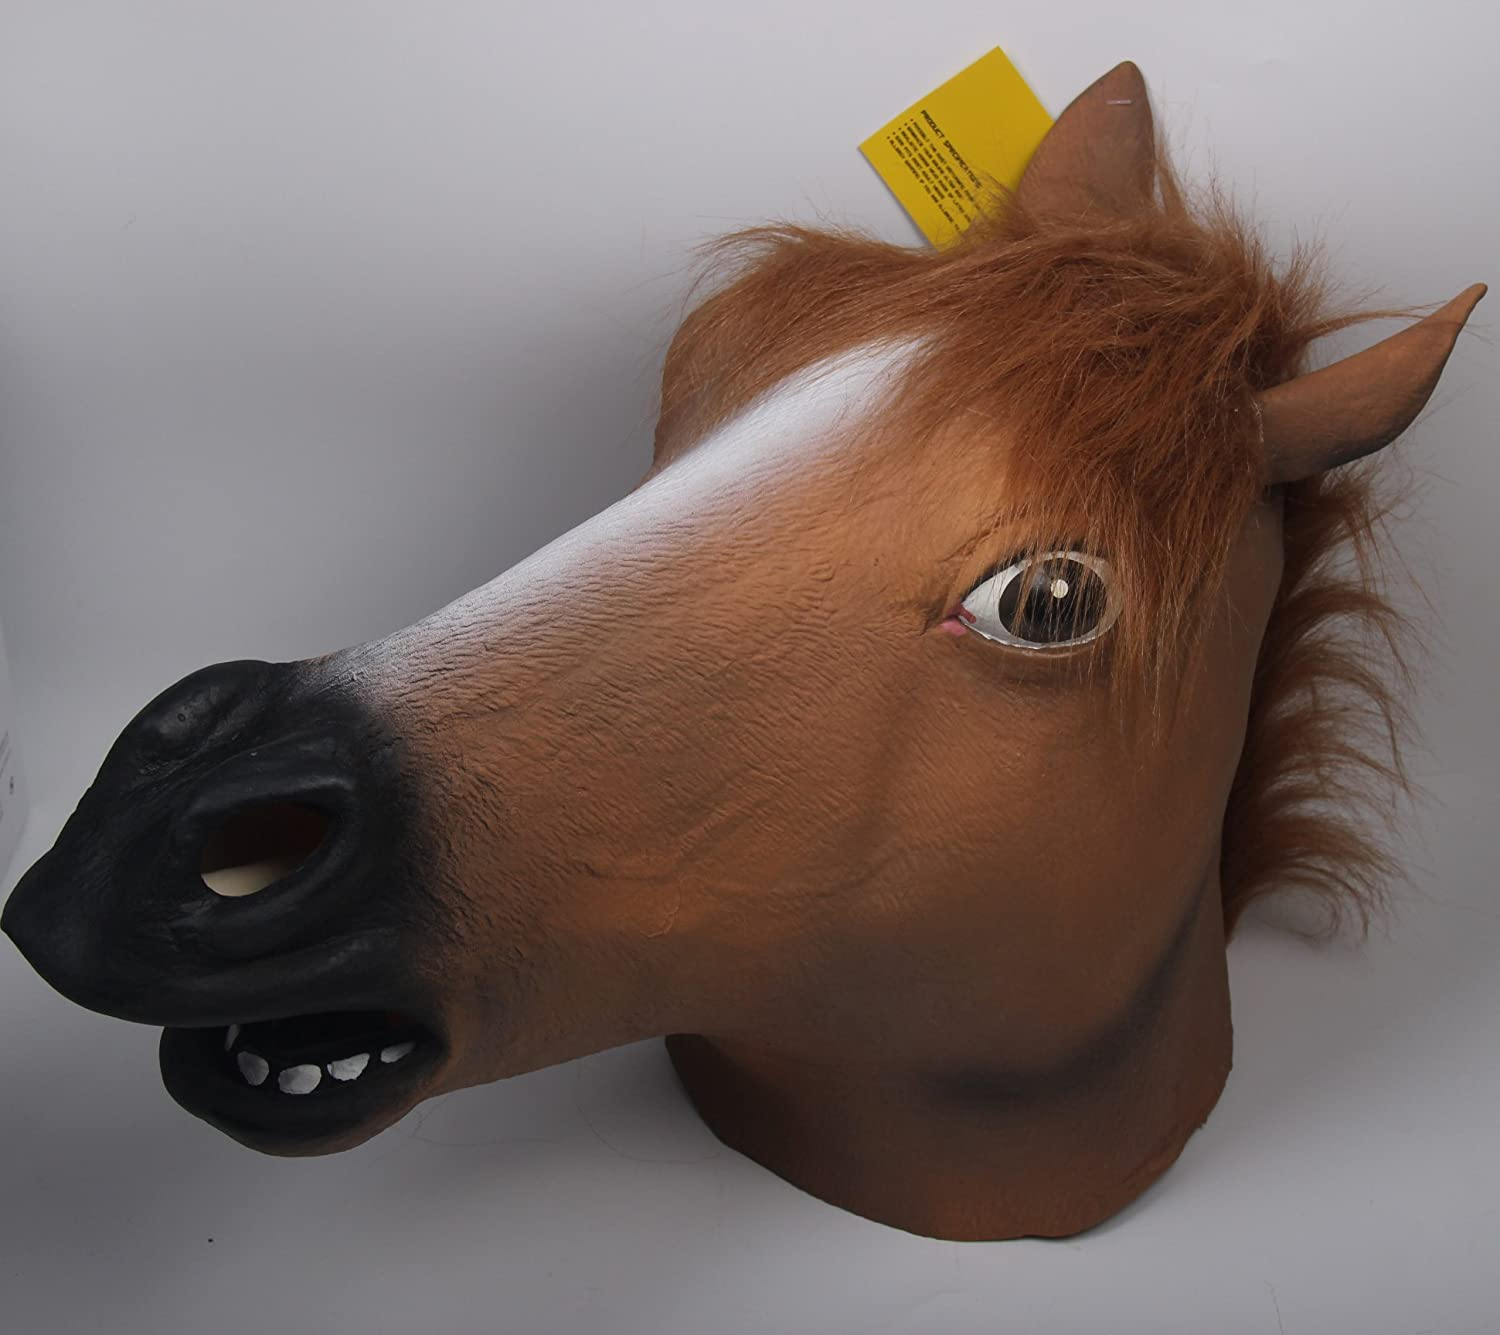 Amazon.com: Signstek Horror Horse Head Mask Scary Halloween ...